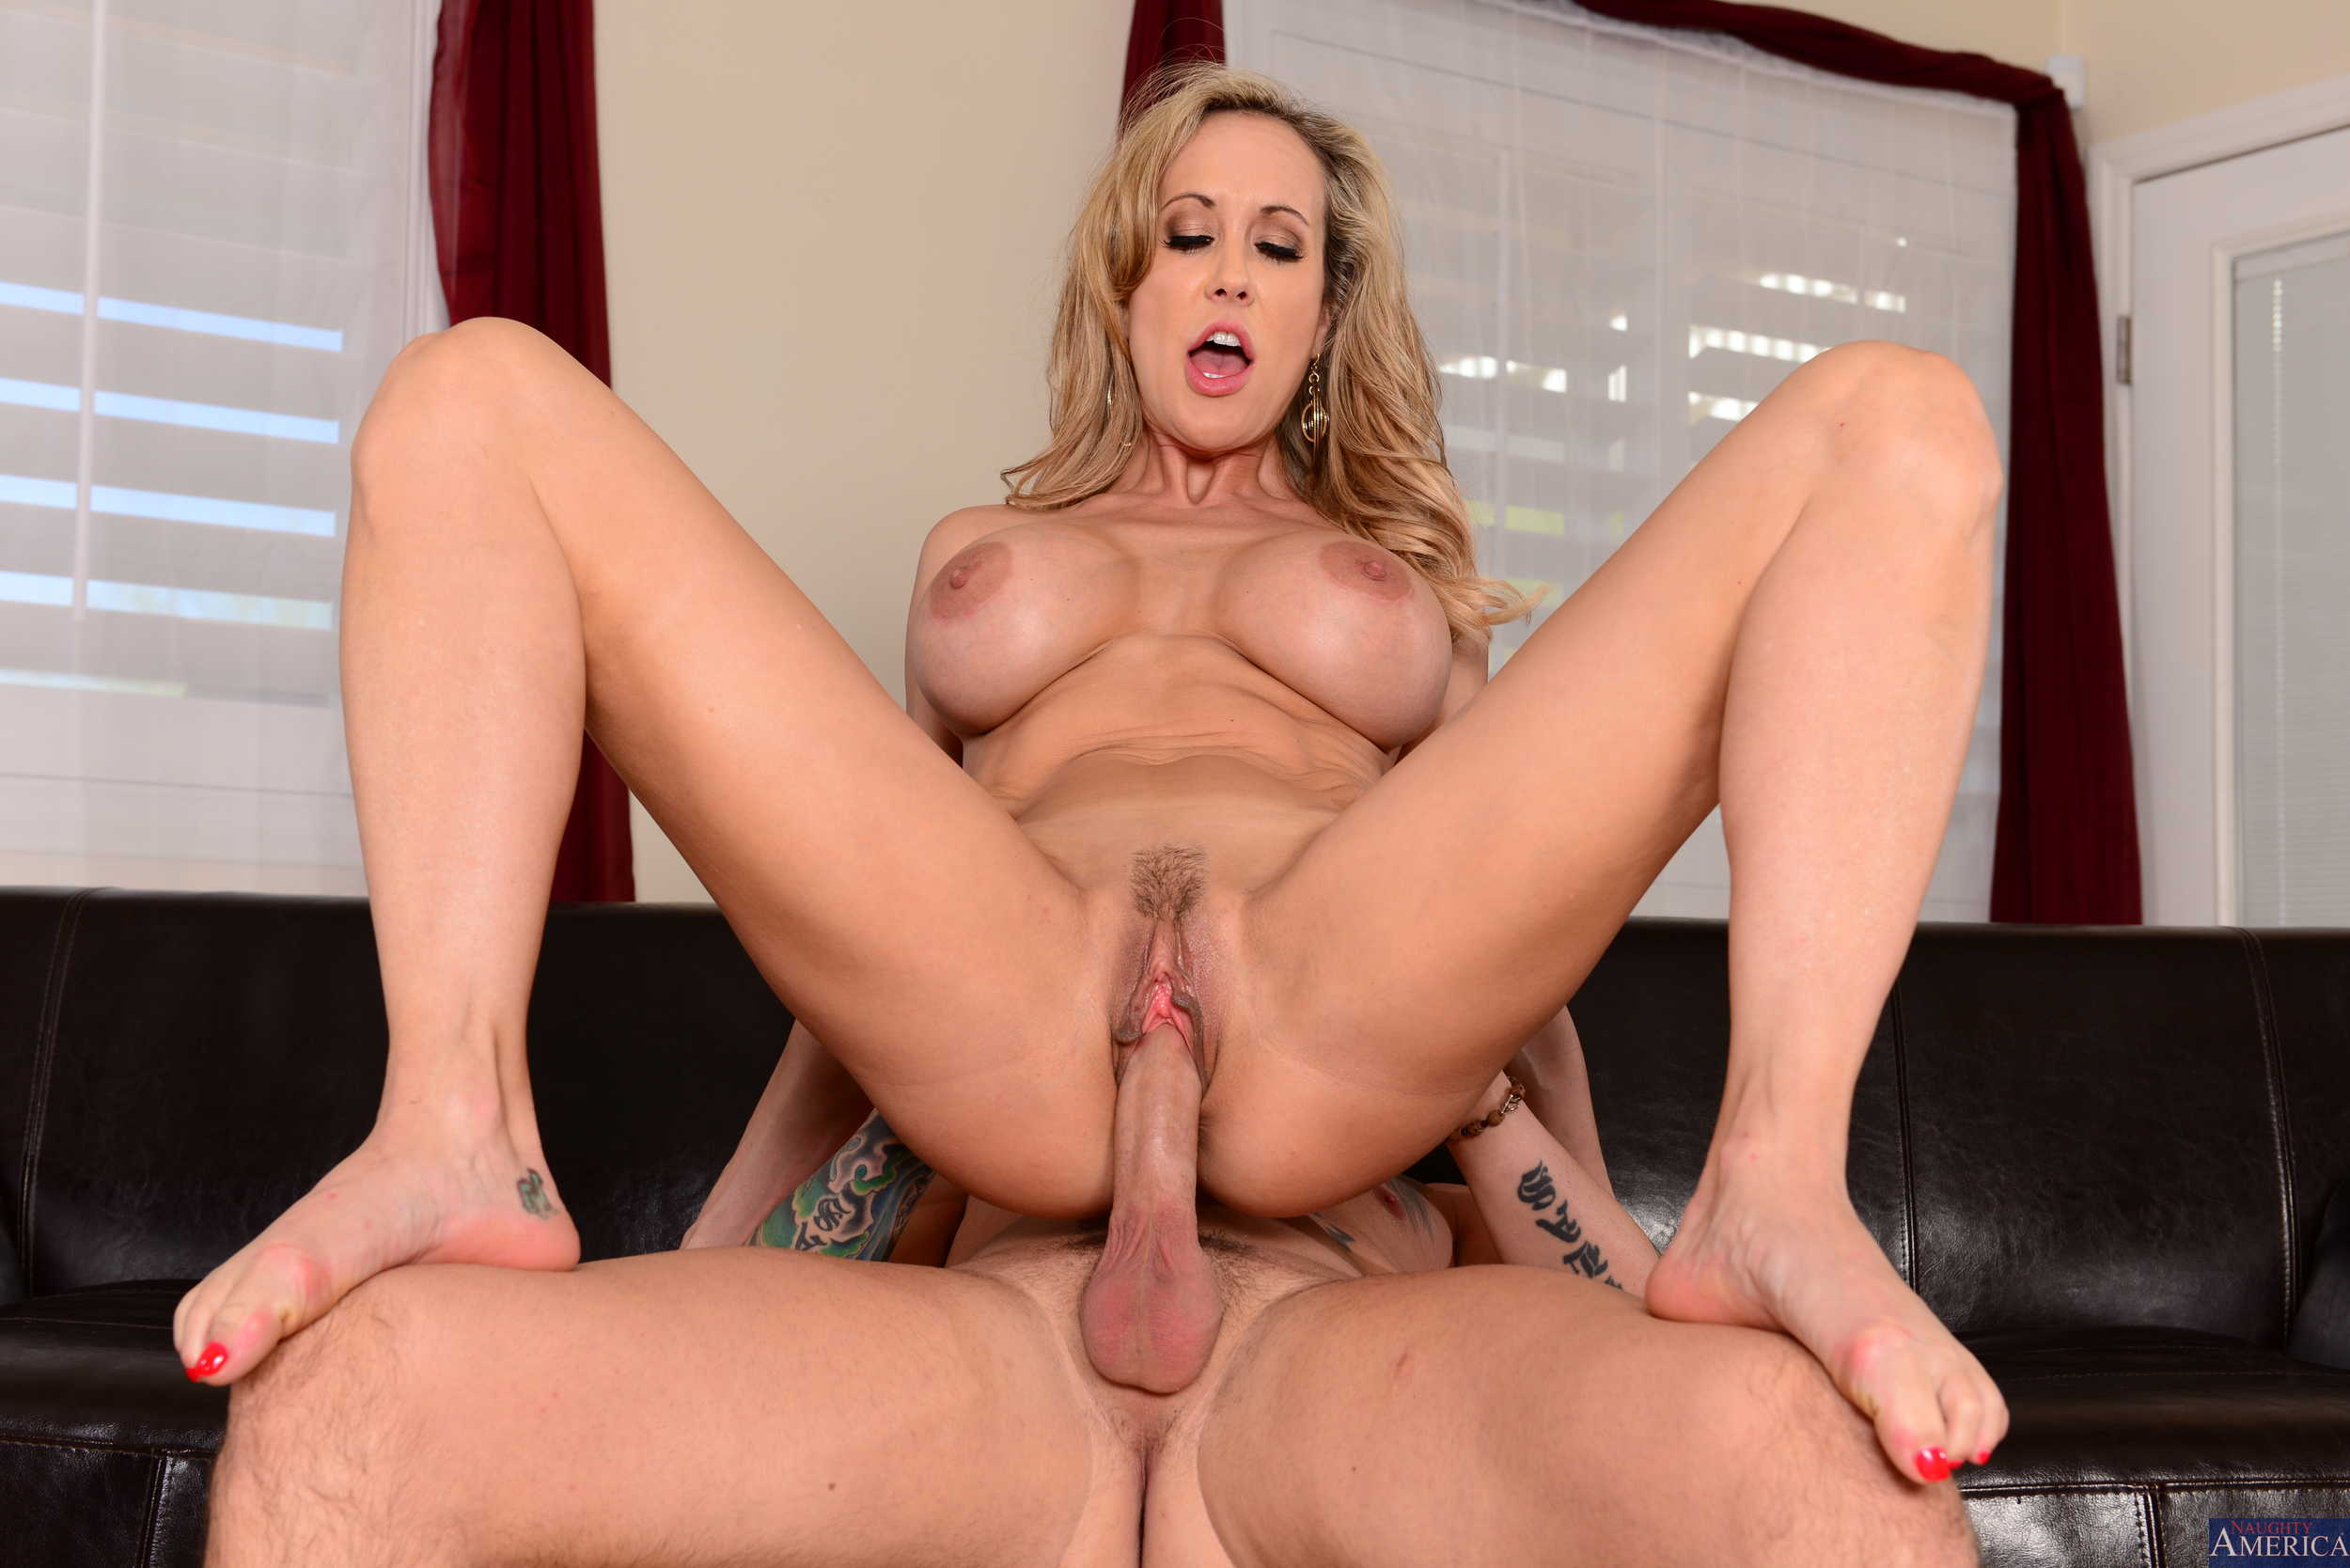 Congratulate, what Brandi love naughty teacher consider